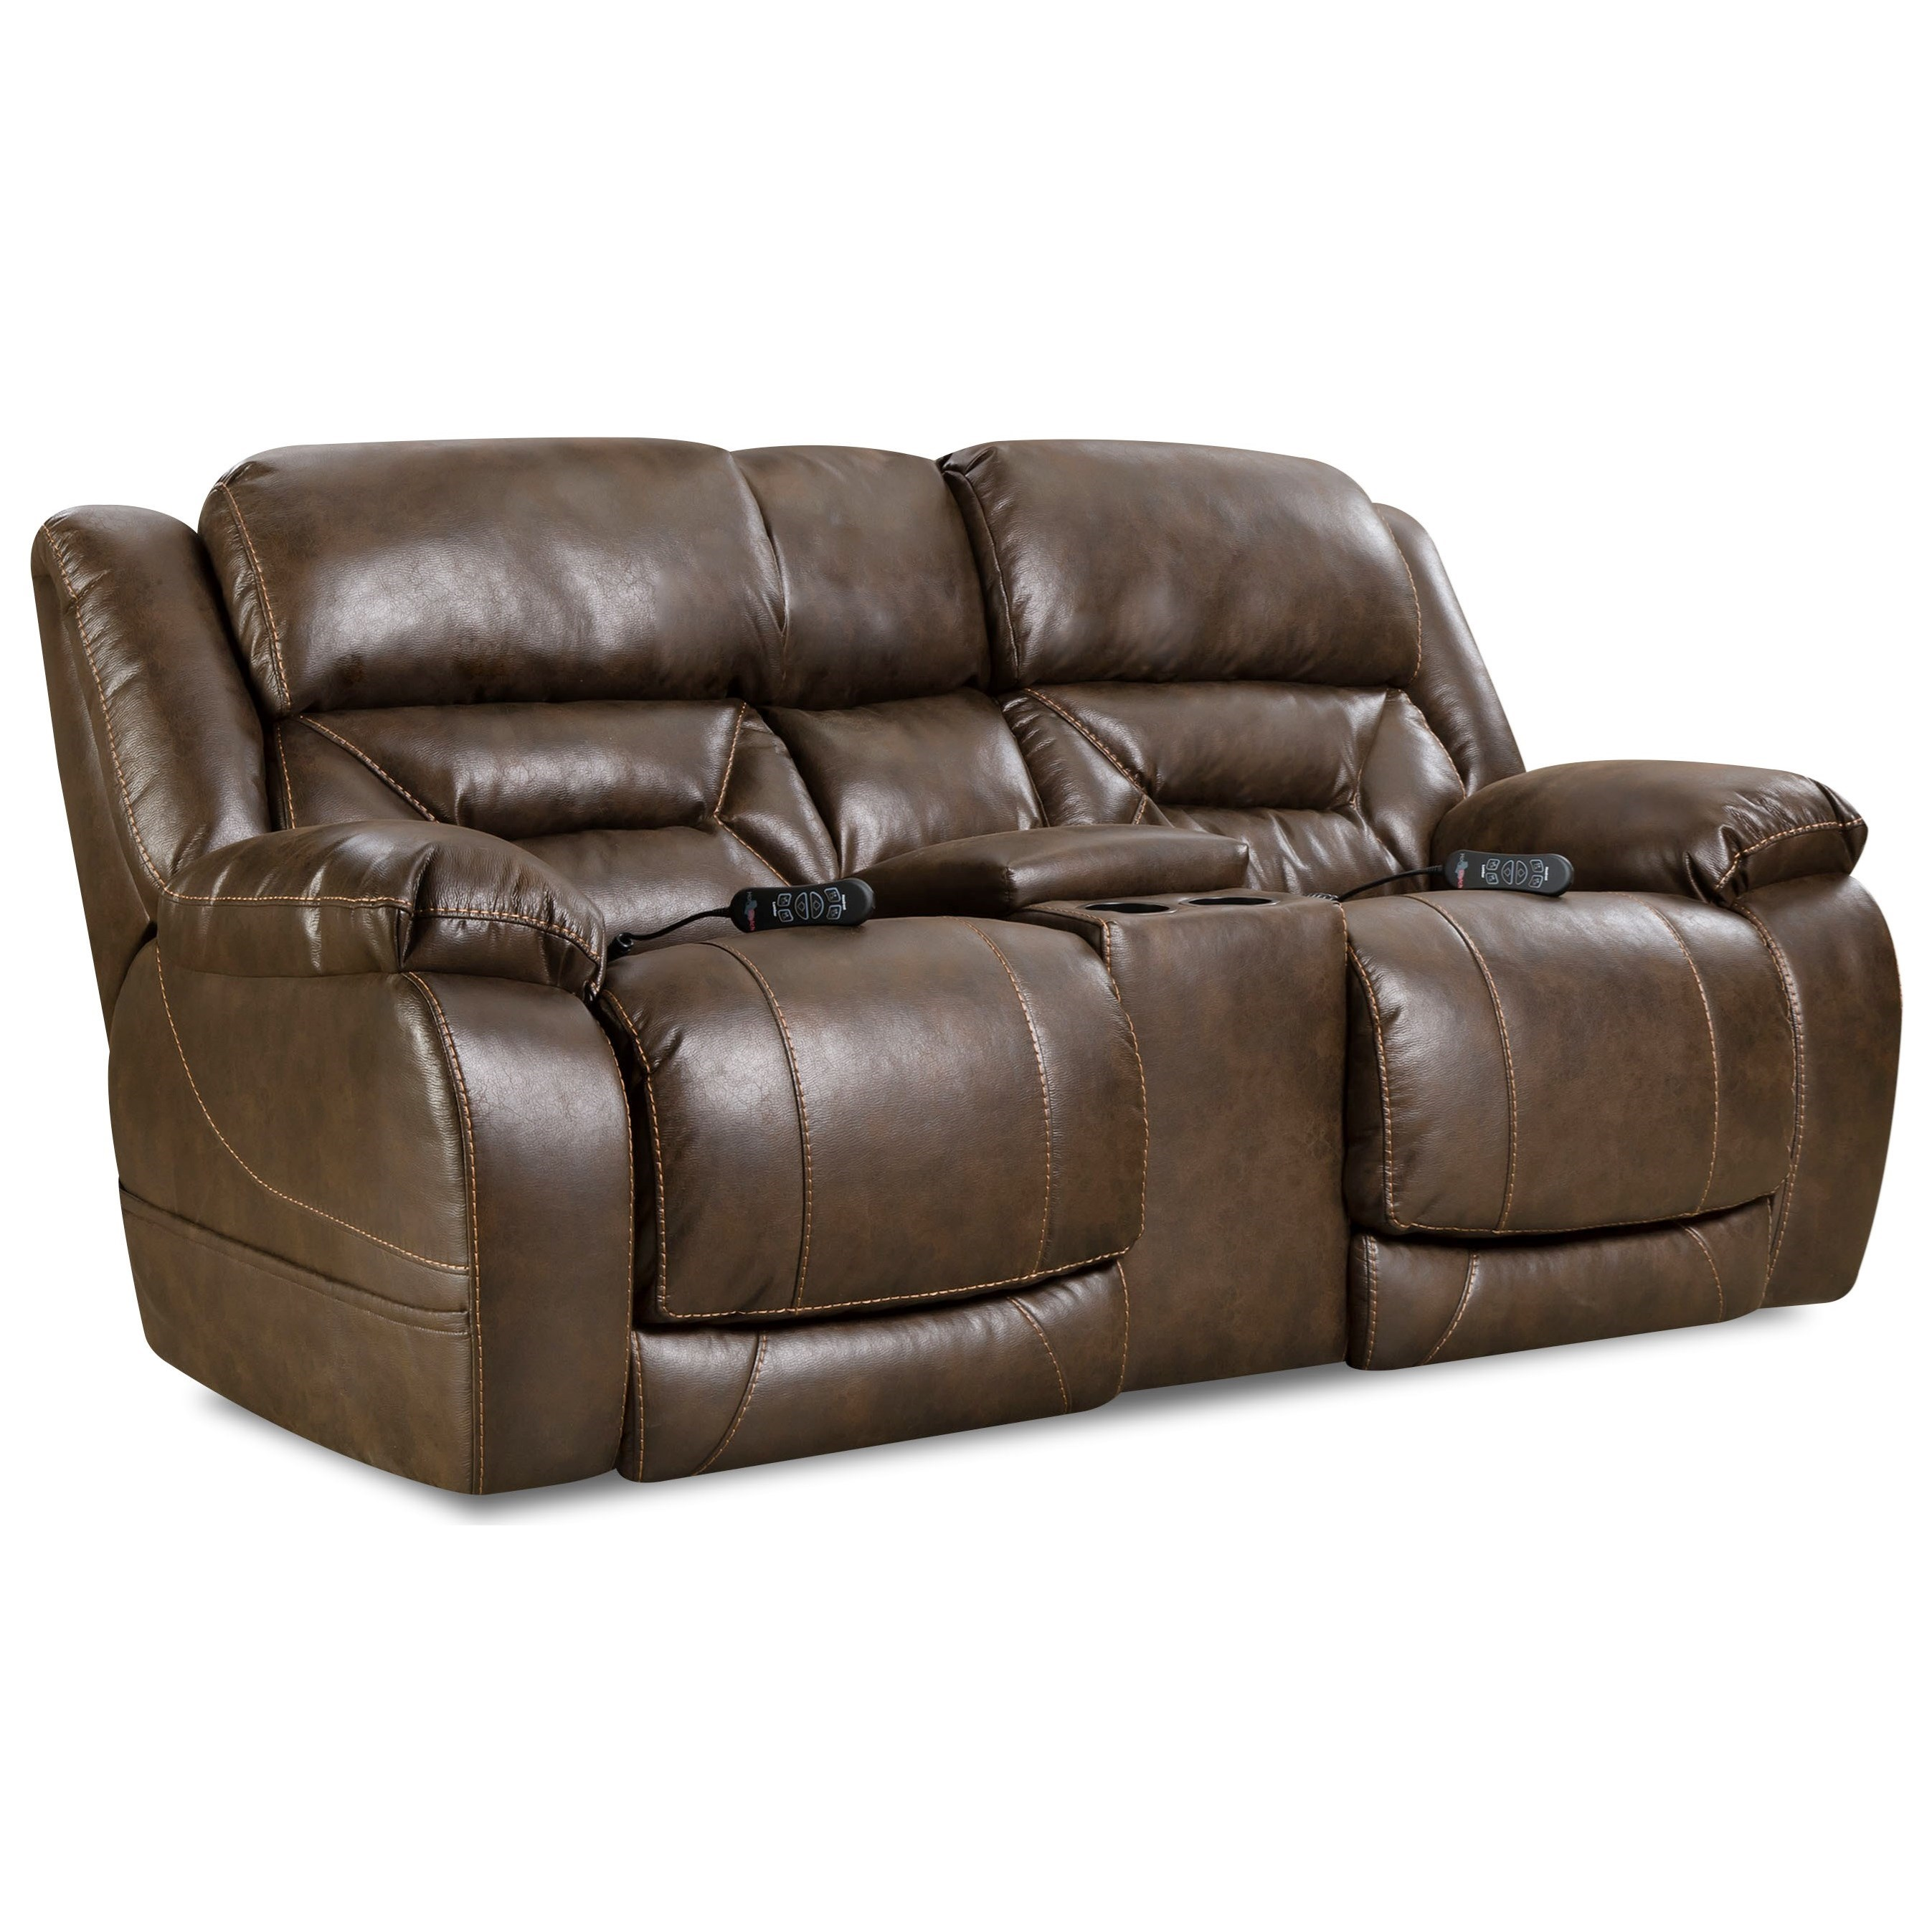 Enterprise Power Reclining Console Loveseat by HomeStretch at Rife's Home Furniture